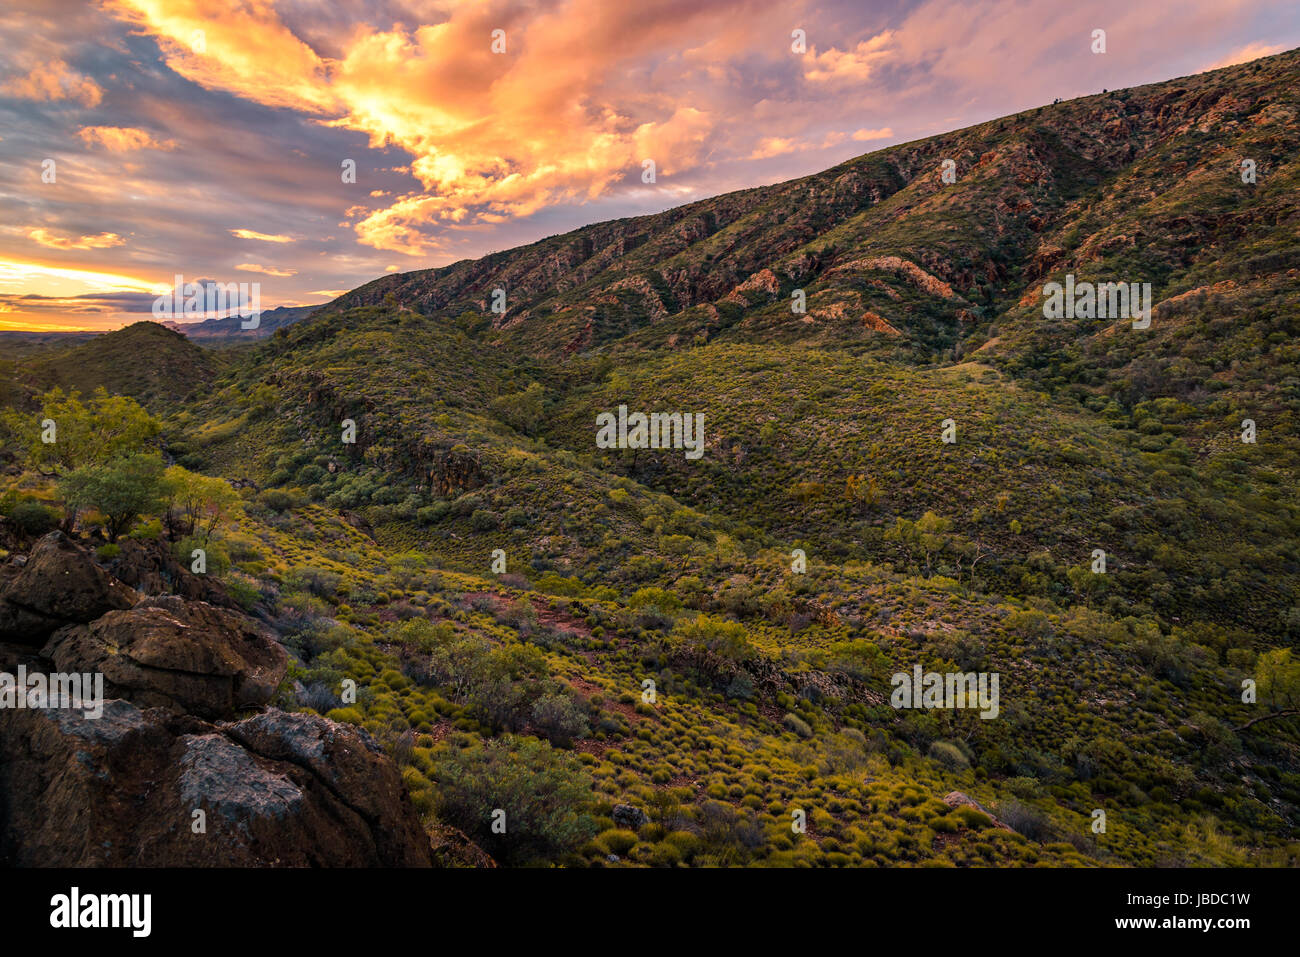 Sunset at Trig Point in West Macdonnell Ranges, Northern Territory - Stock Image